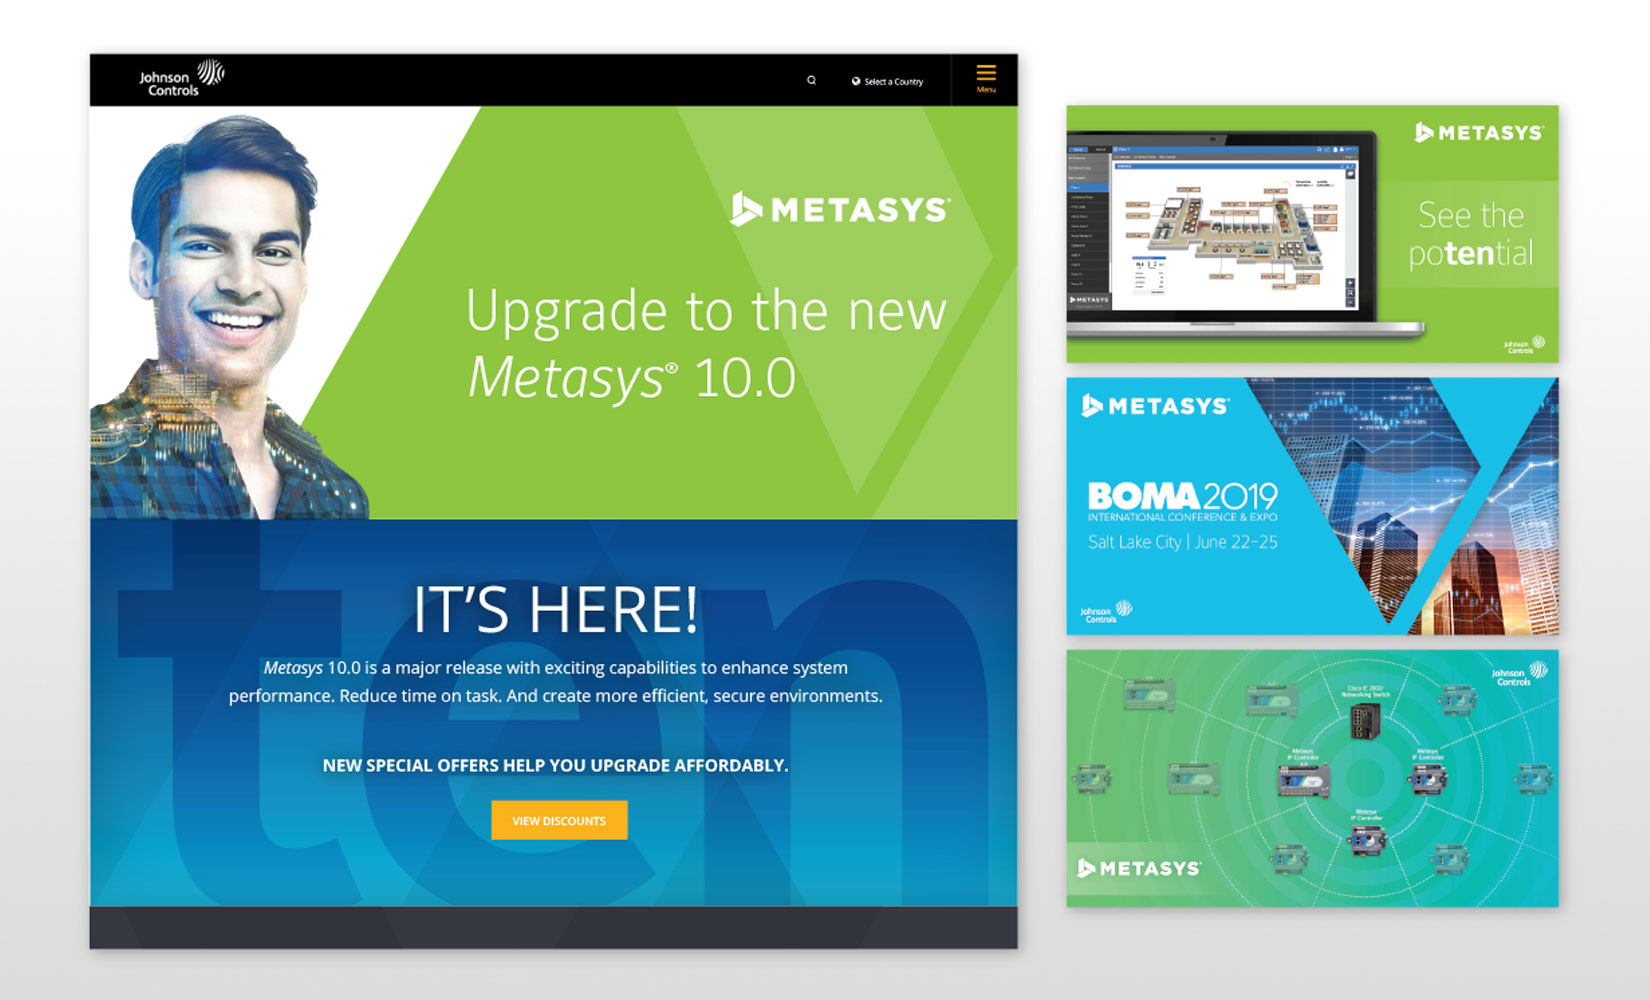 Johnson Controls Metasys website and social media ads